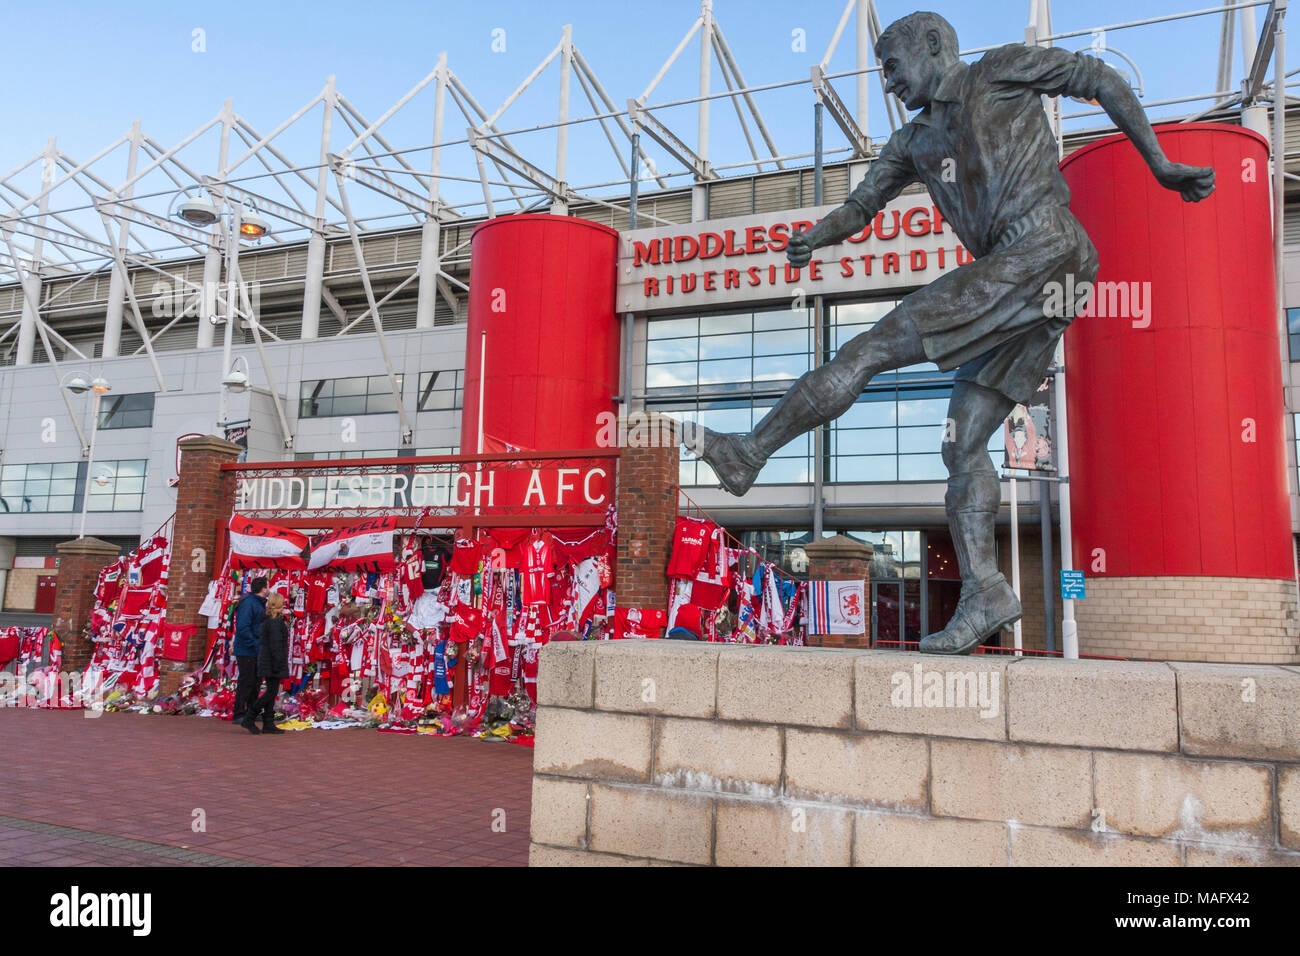 The tributes to commentator and broadcaster, Alistair Brownlee, outside Middlesbrough's Riverside Football Stadium,England,UK - Stock Image